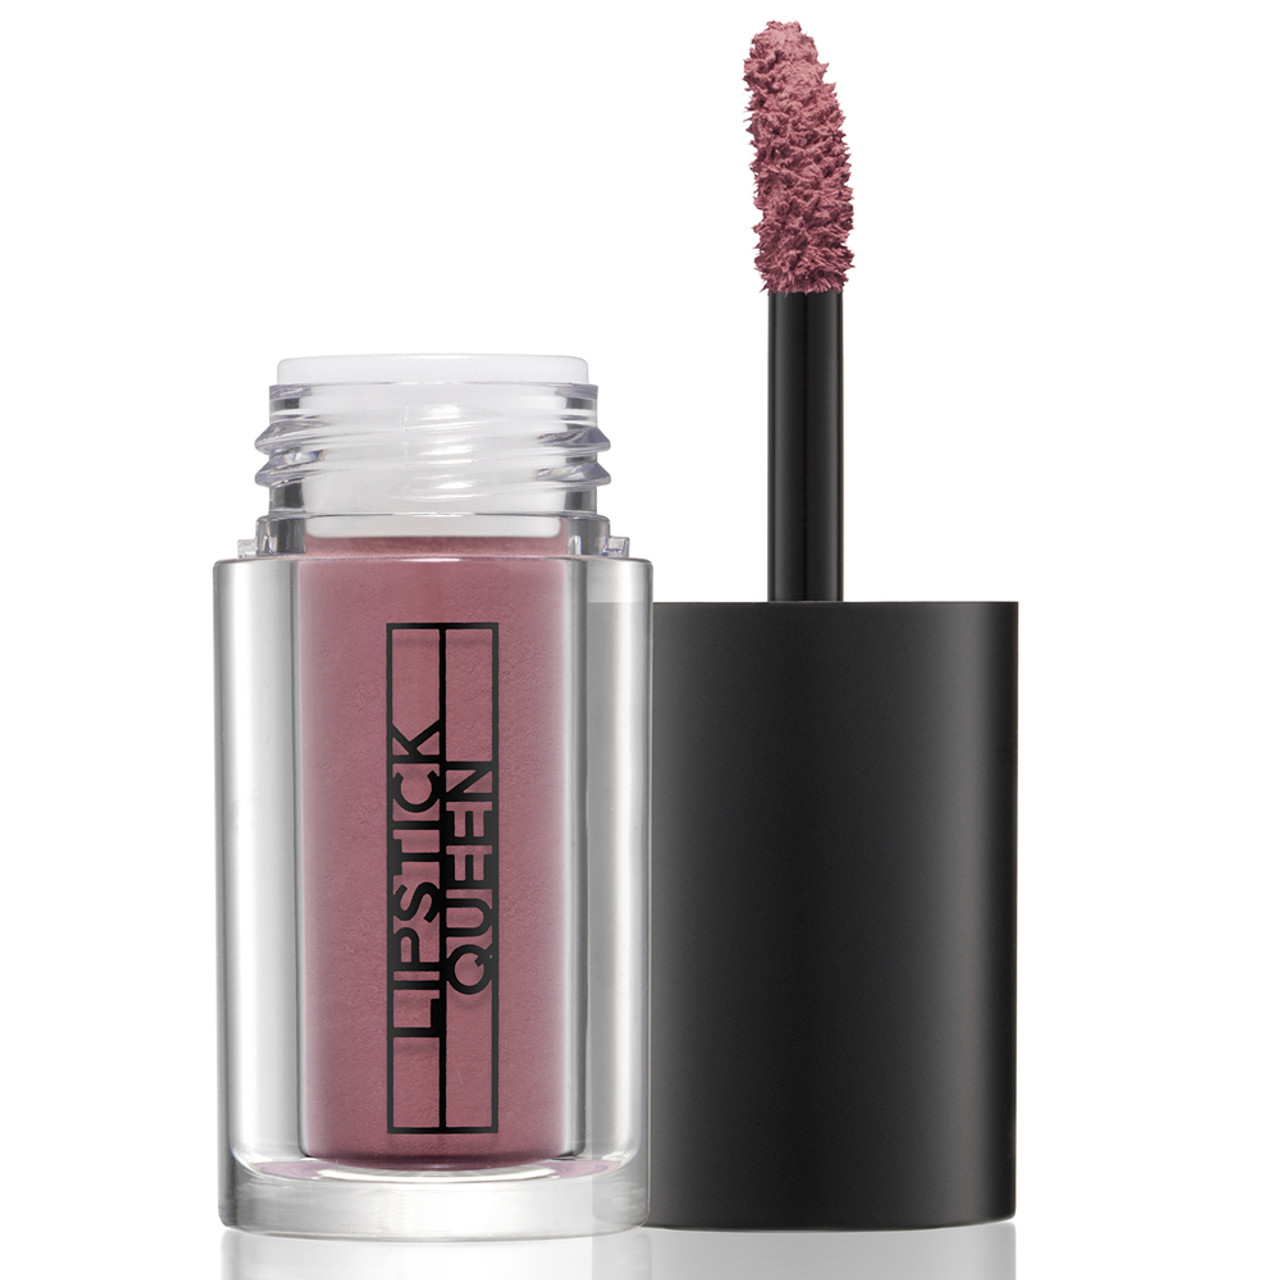 Lipstick Queen Lipdulgence Velvet Lip Powder Sugar Cookie